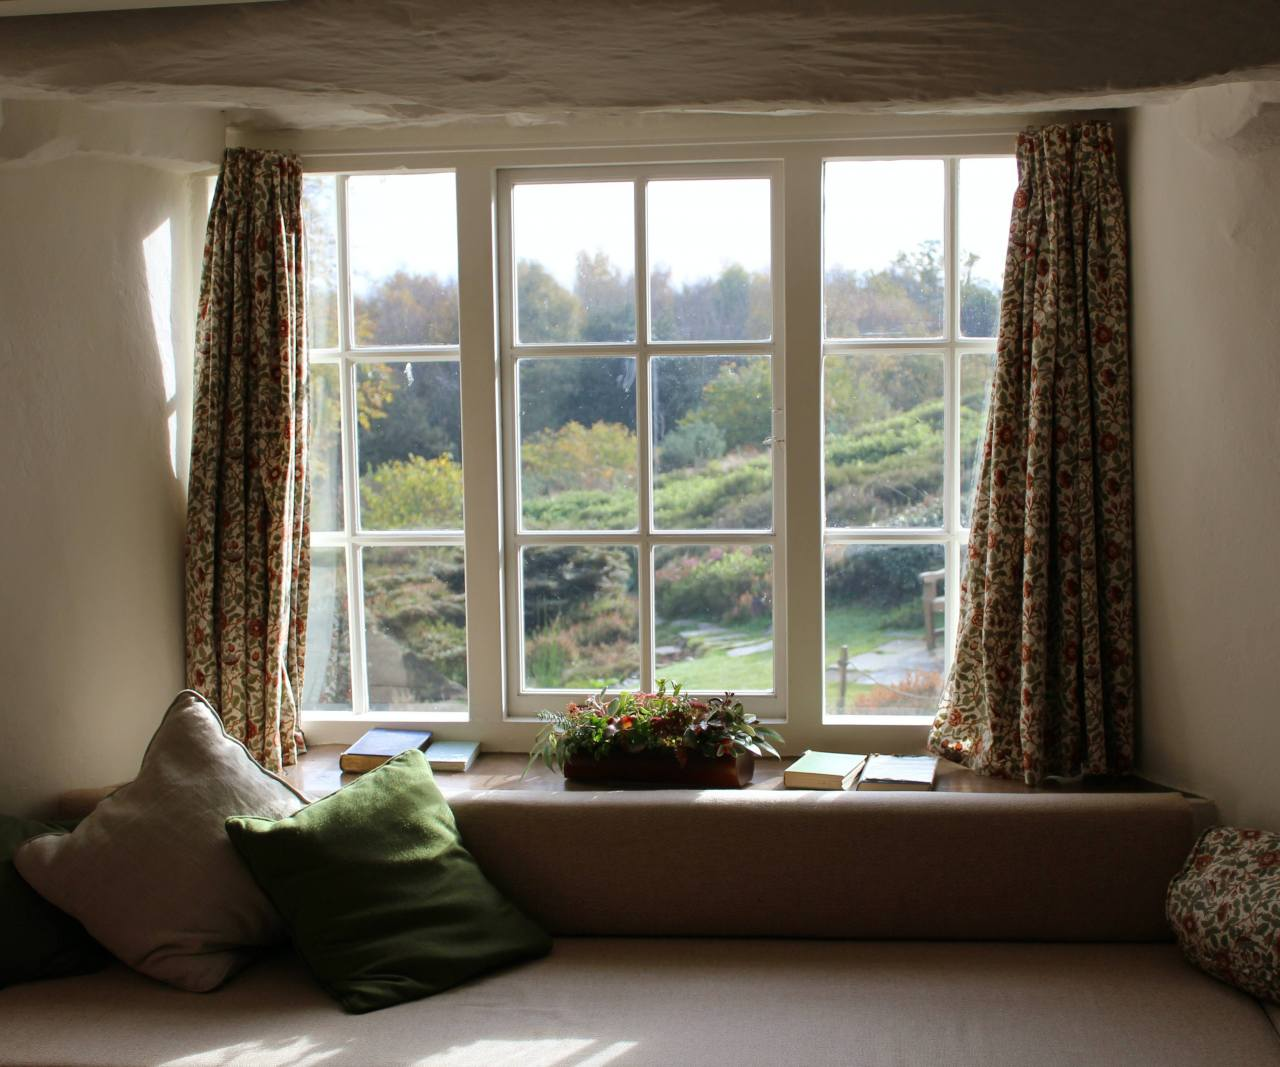 Double Glazing Vs Triple Glazing – Which Should You Choose And Why?